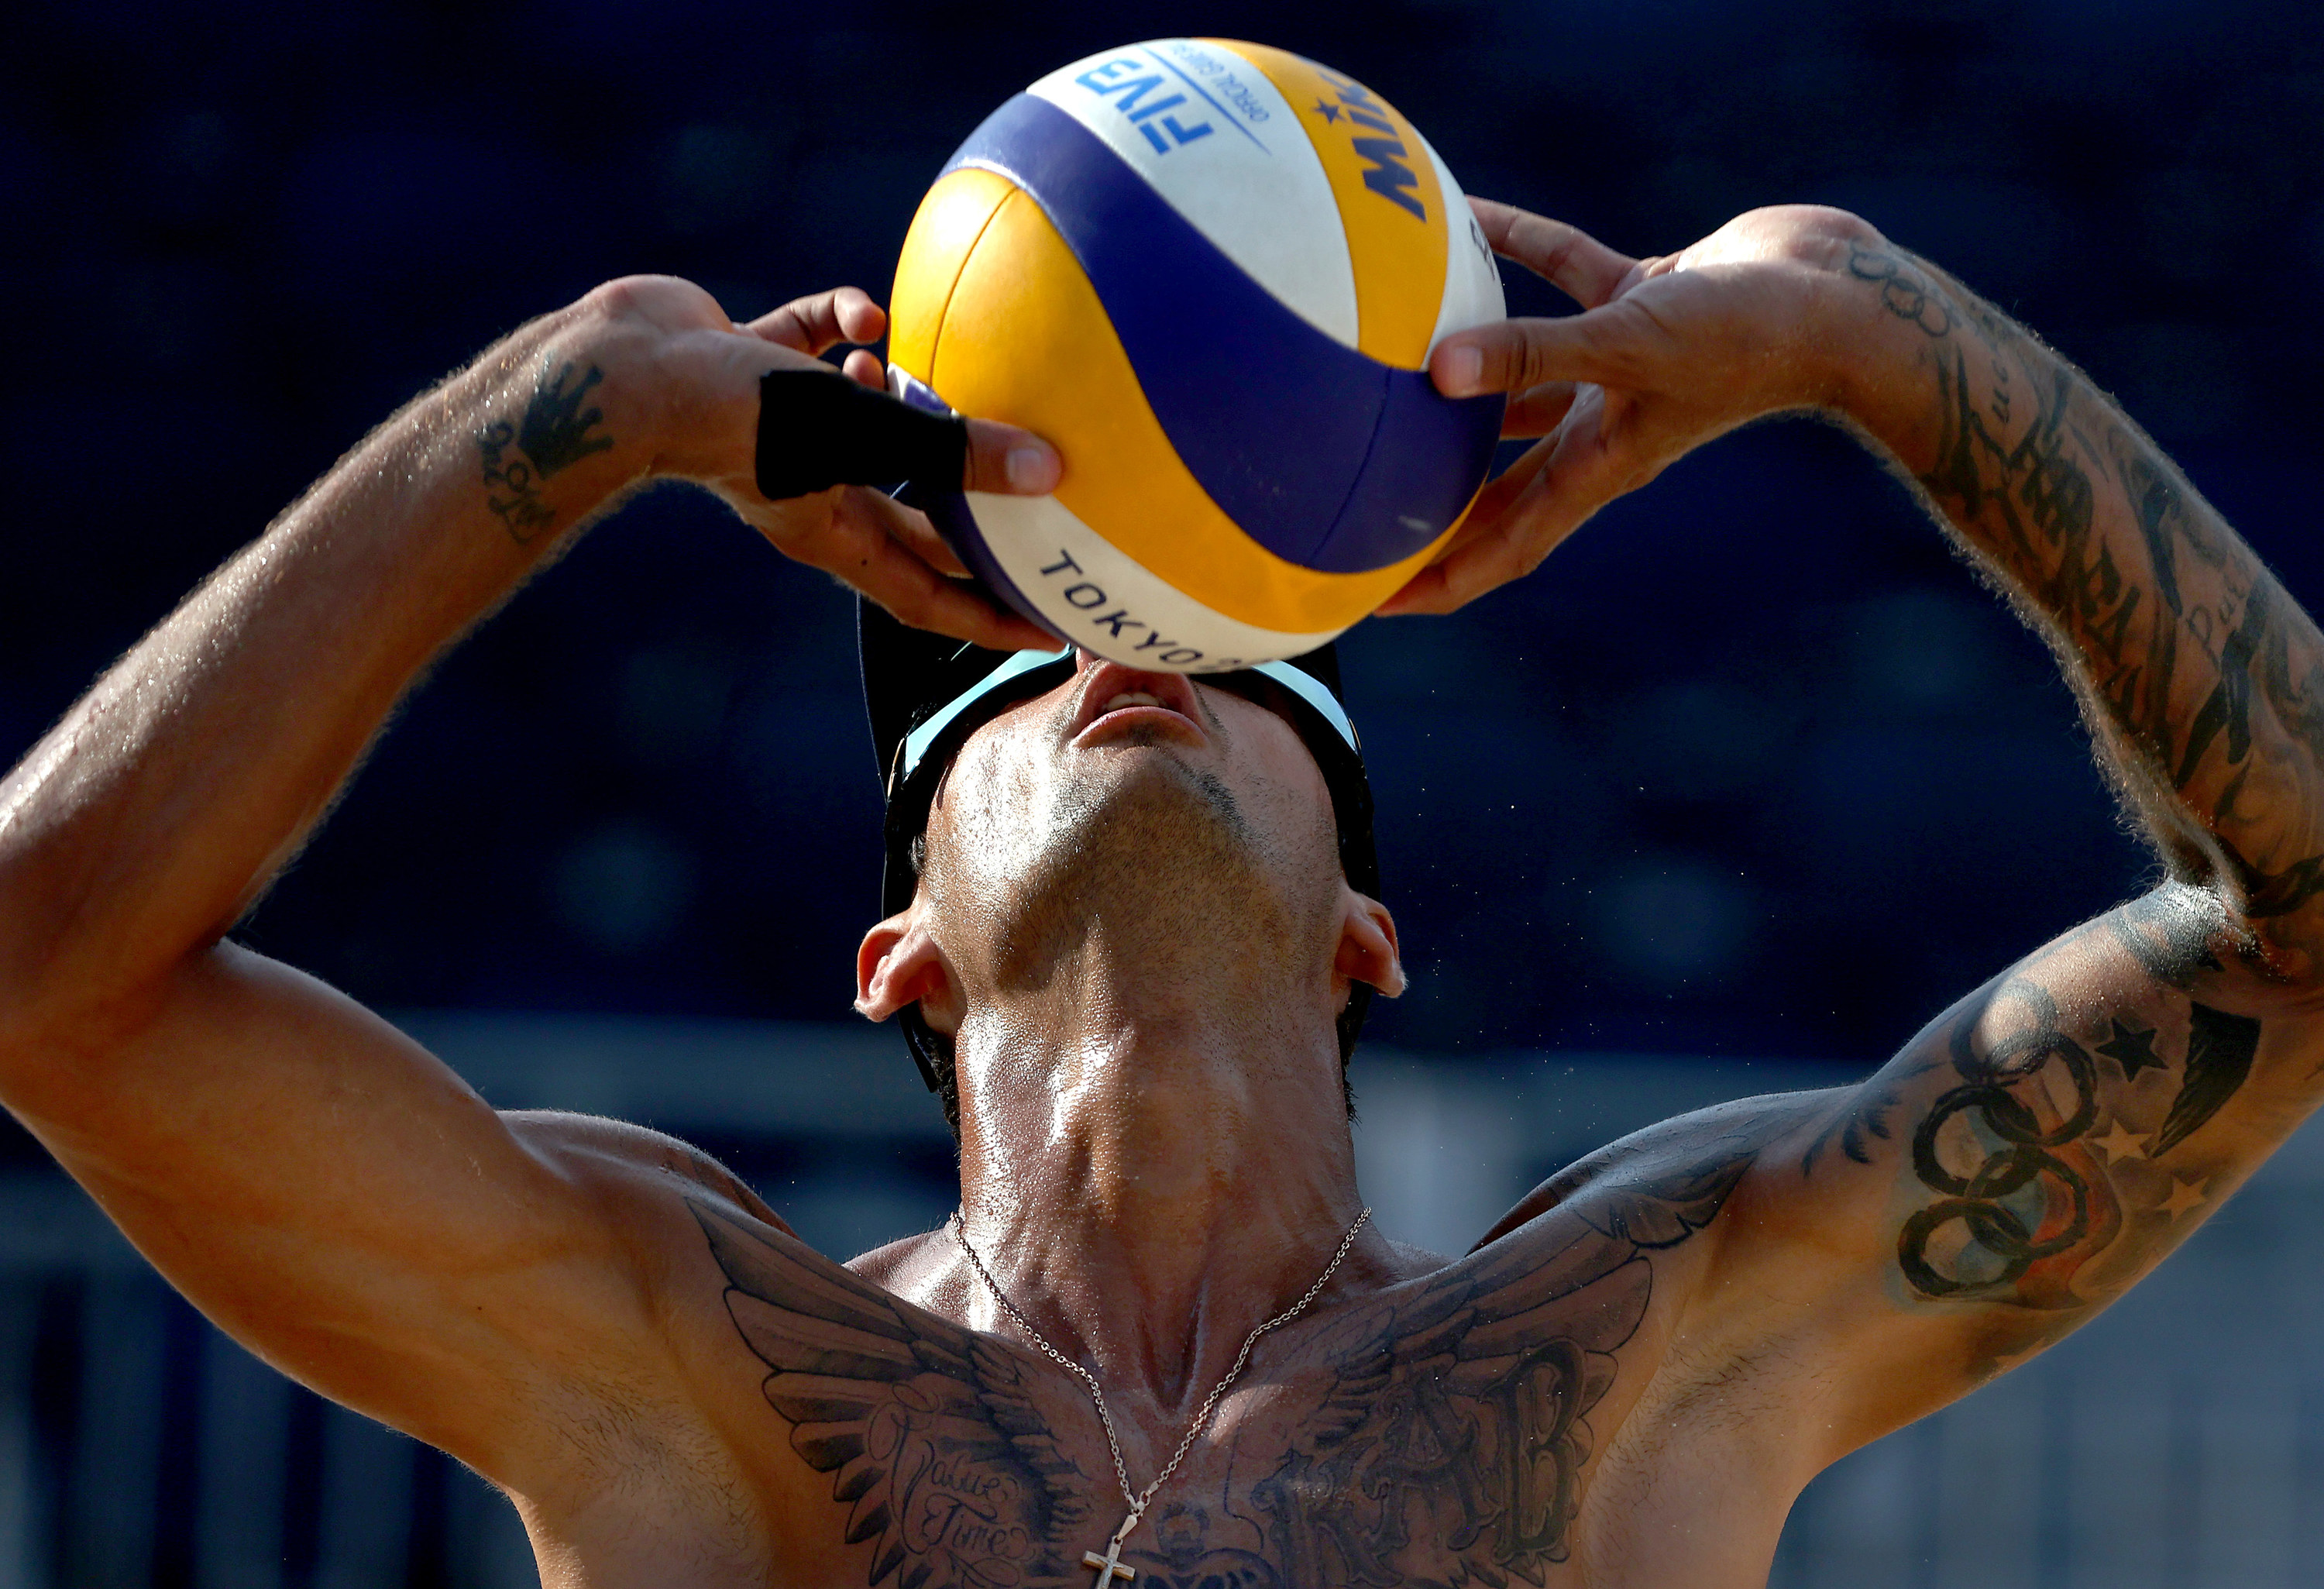 A tattooed volleyball player seen practicing for a match.